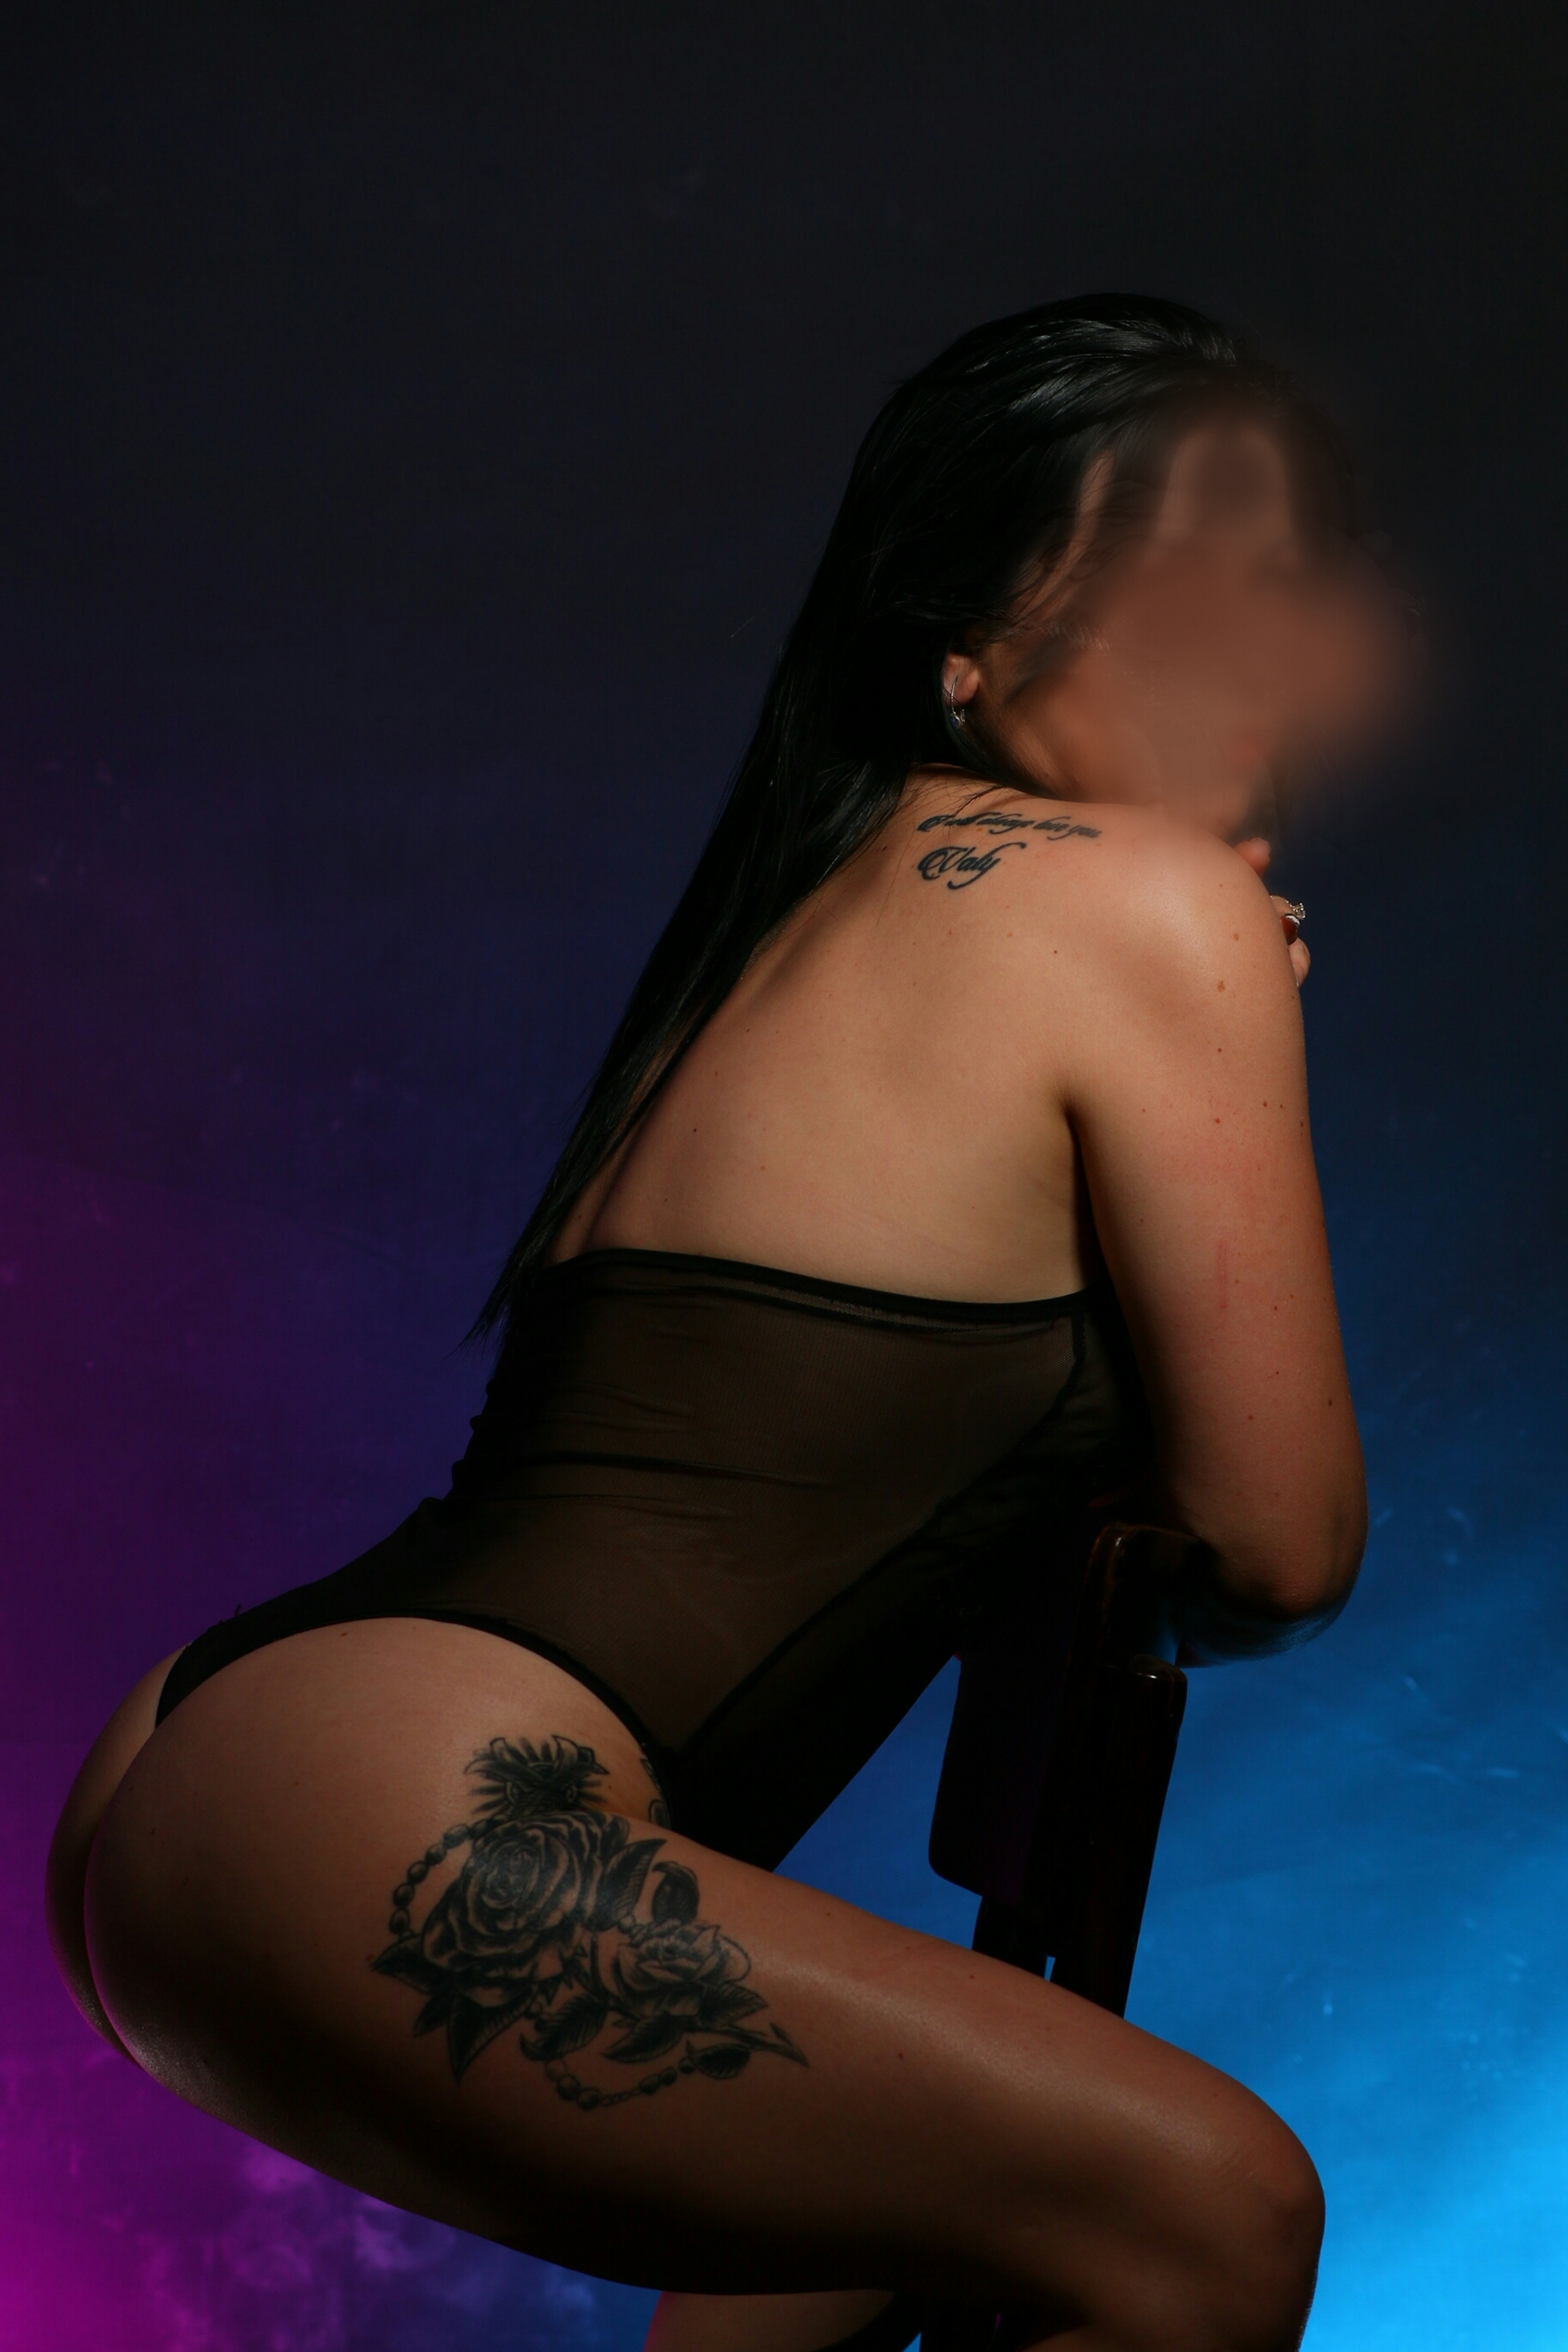 strippers escort agency europe